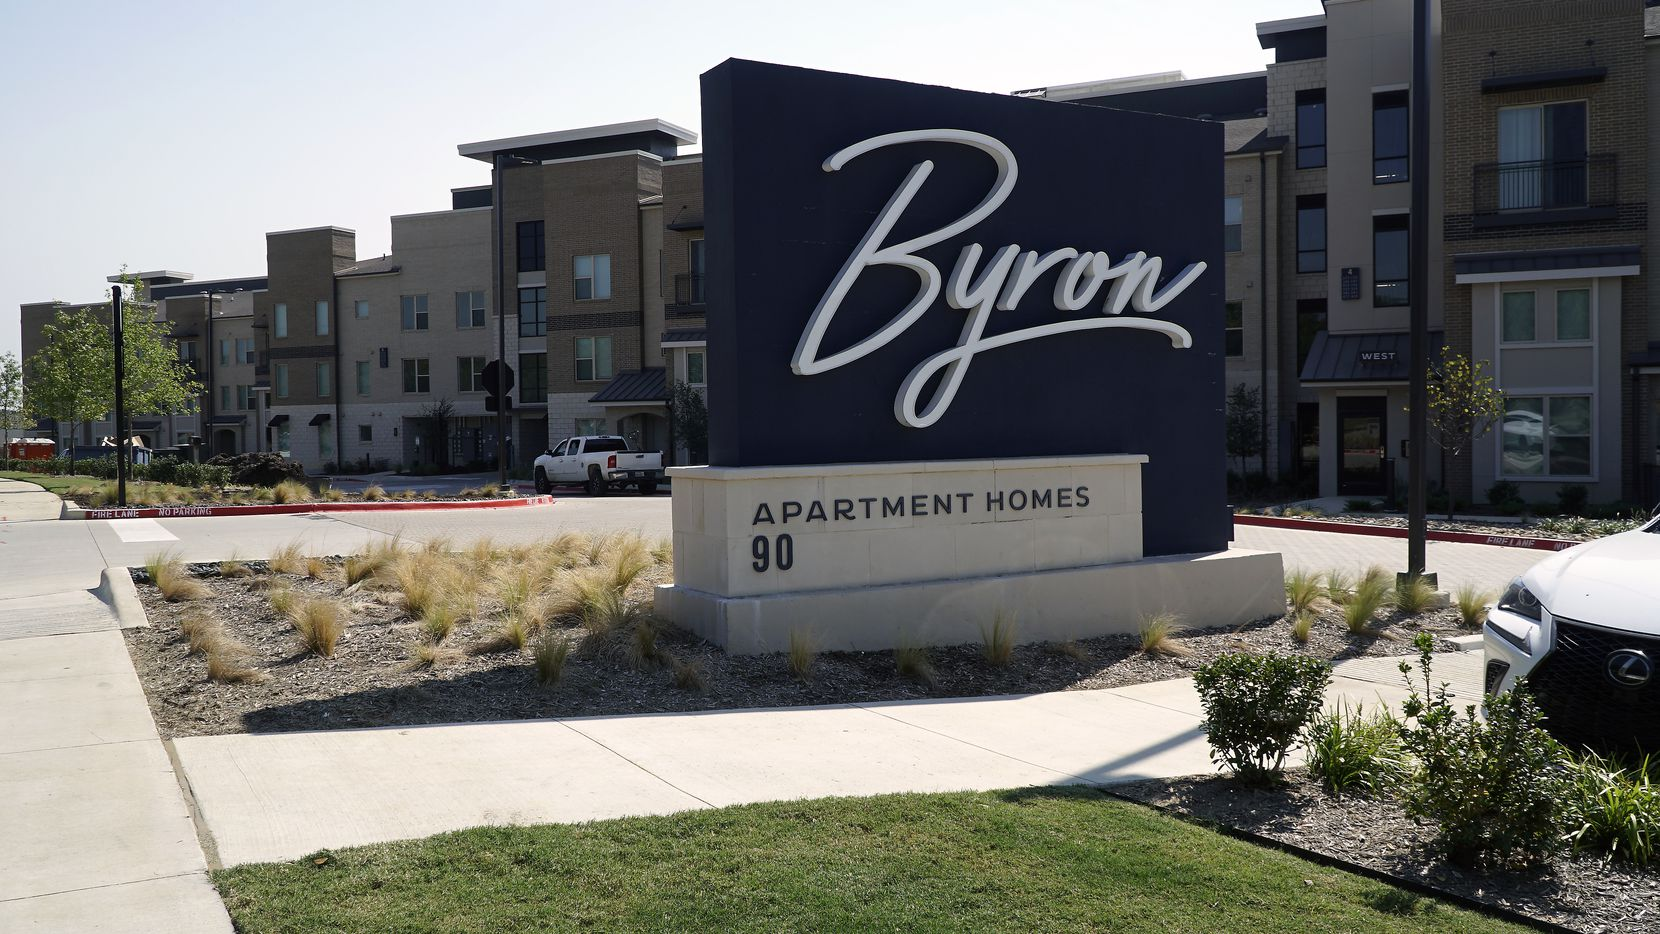 The Byron apartment complex in Trophy Club, Texas after it opened in 2020.